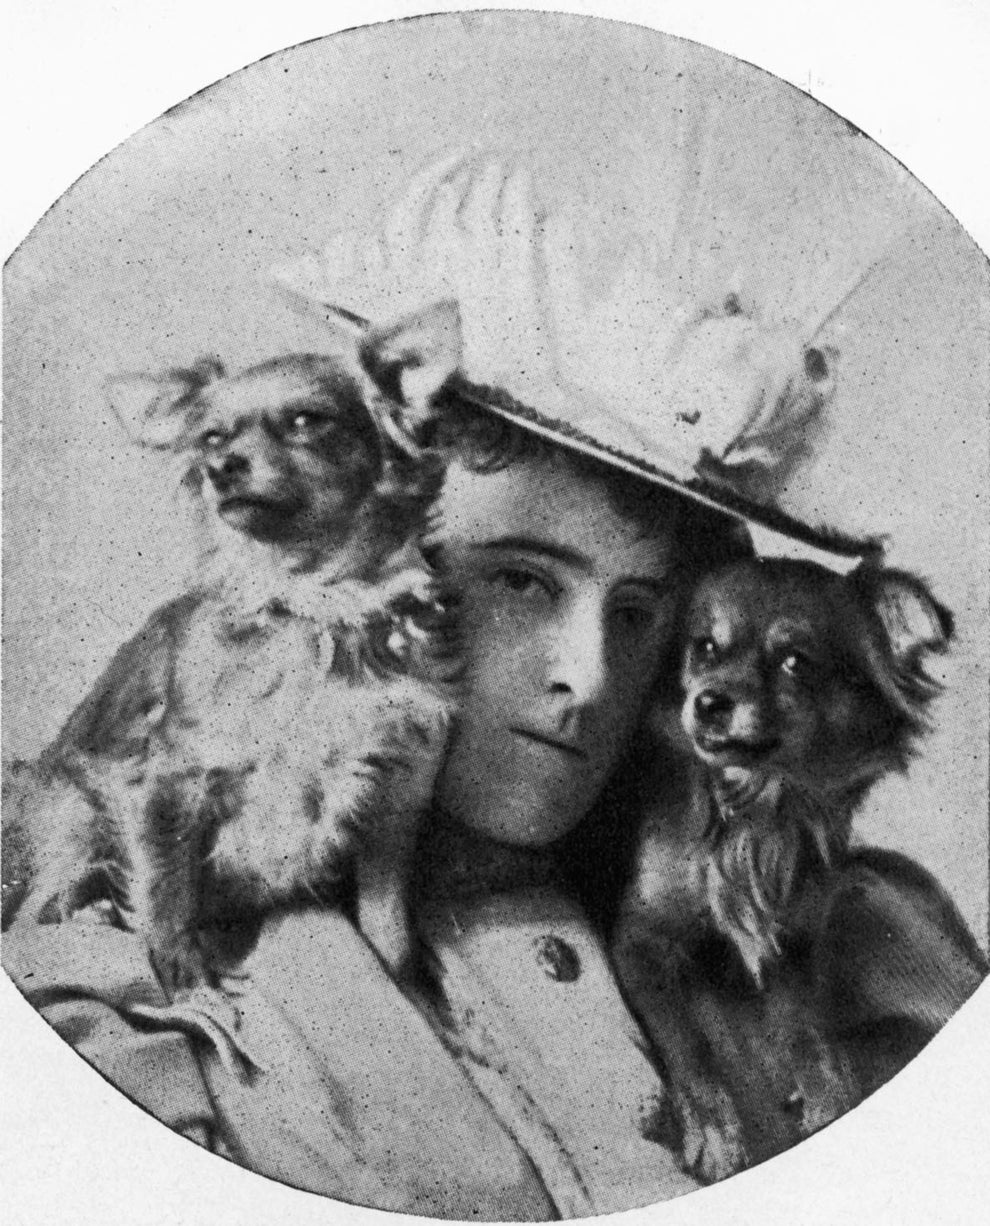 Edith Wharton, the first woman to be award the Pulitzer Prize for literature.